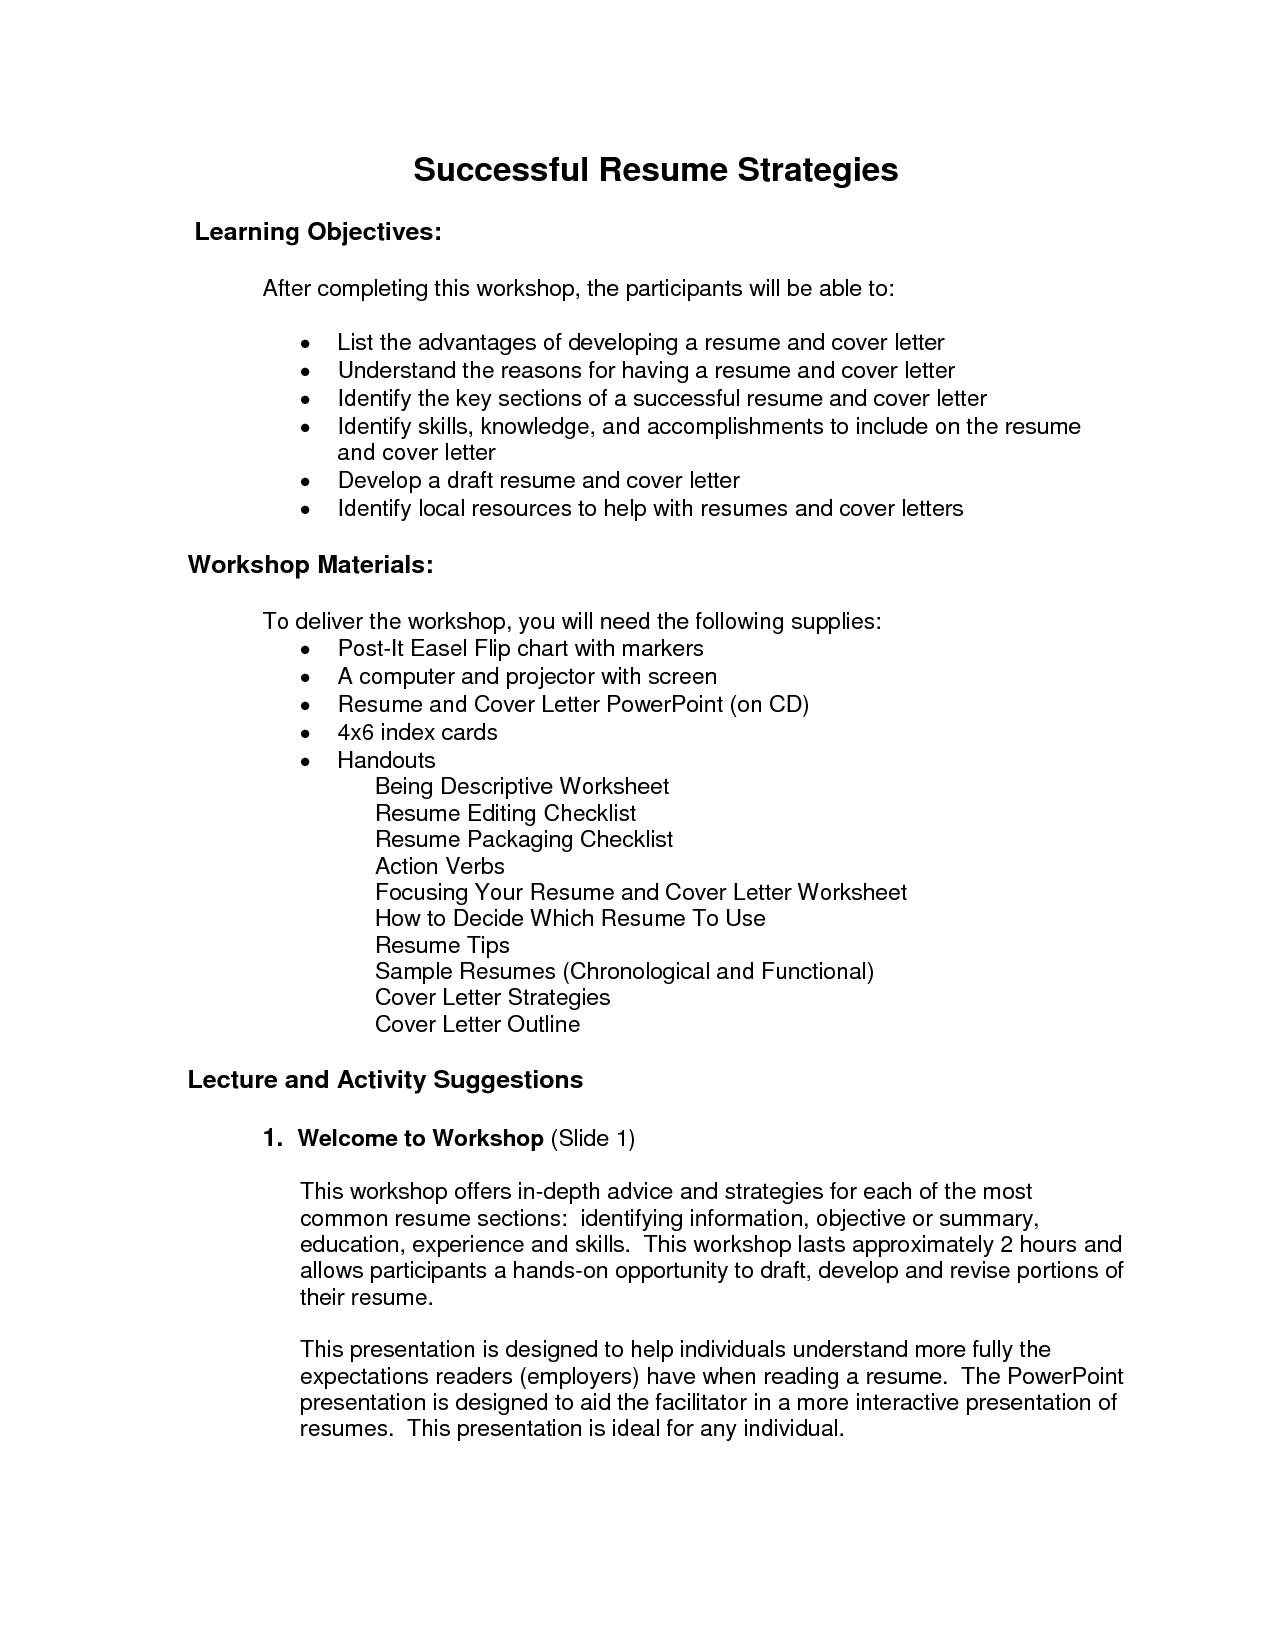 Objectives In Resume Fashion Stylist Resume Objective Examples  Httpwww